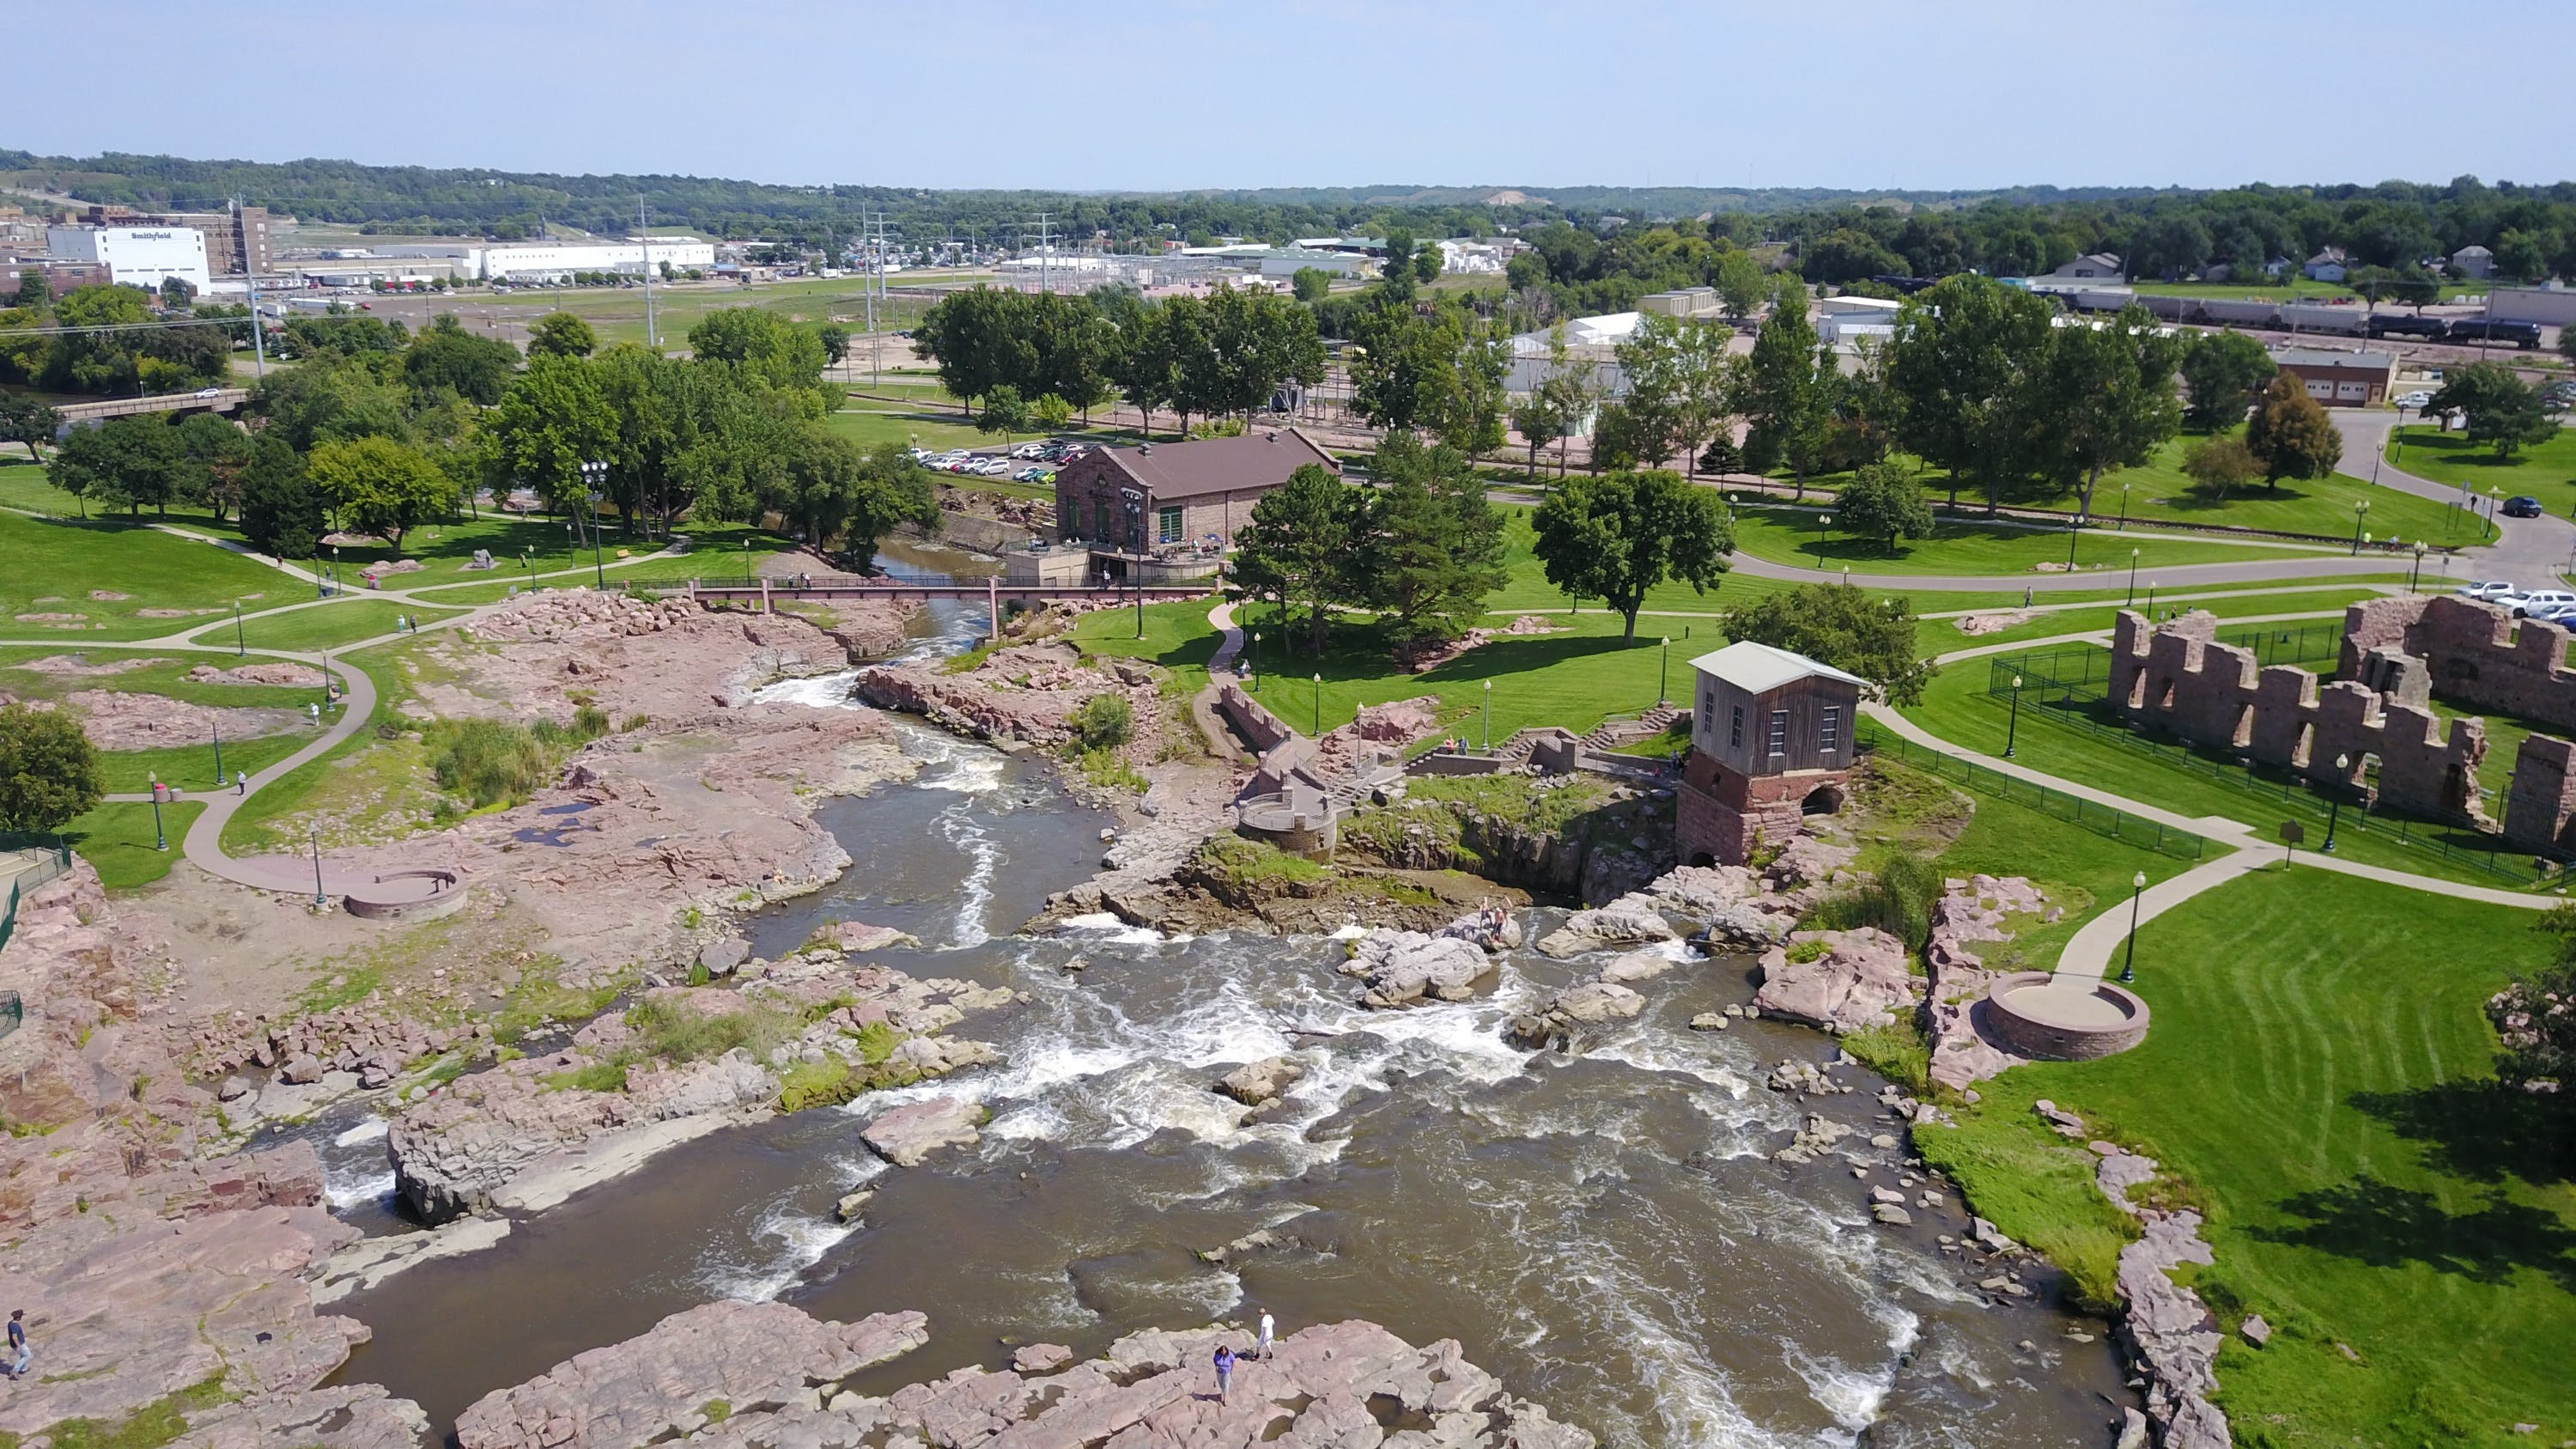 Free stock photo of waterfall, nature park, aerial view, aerial shot